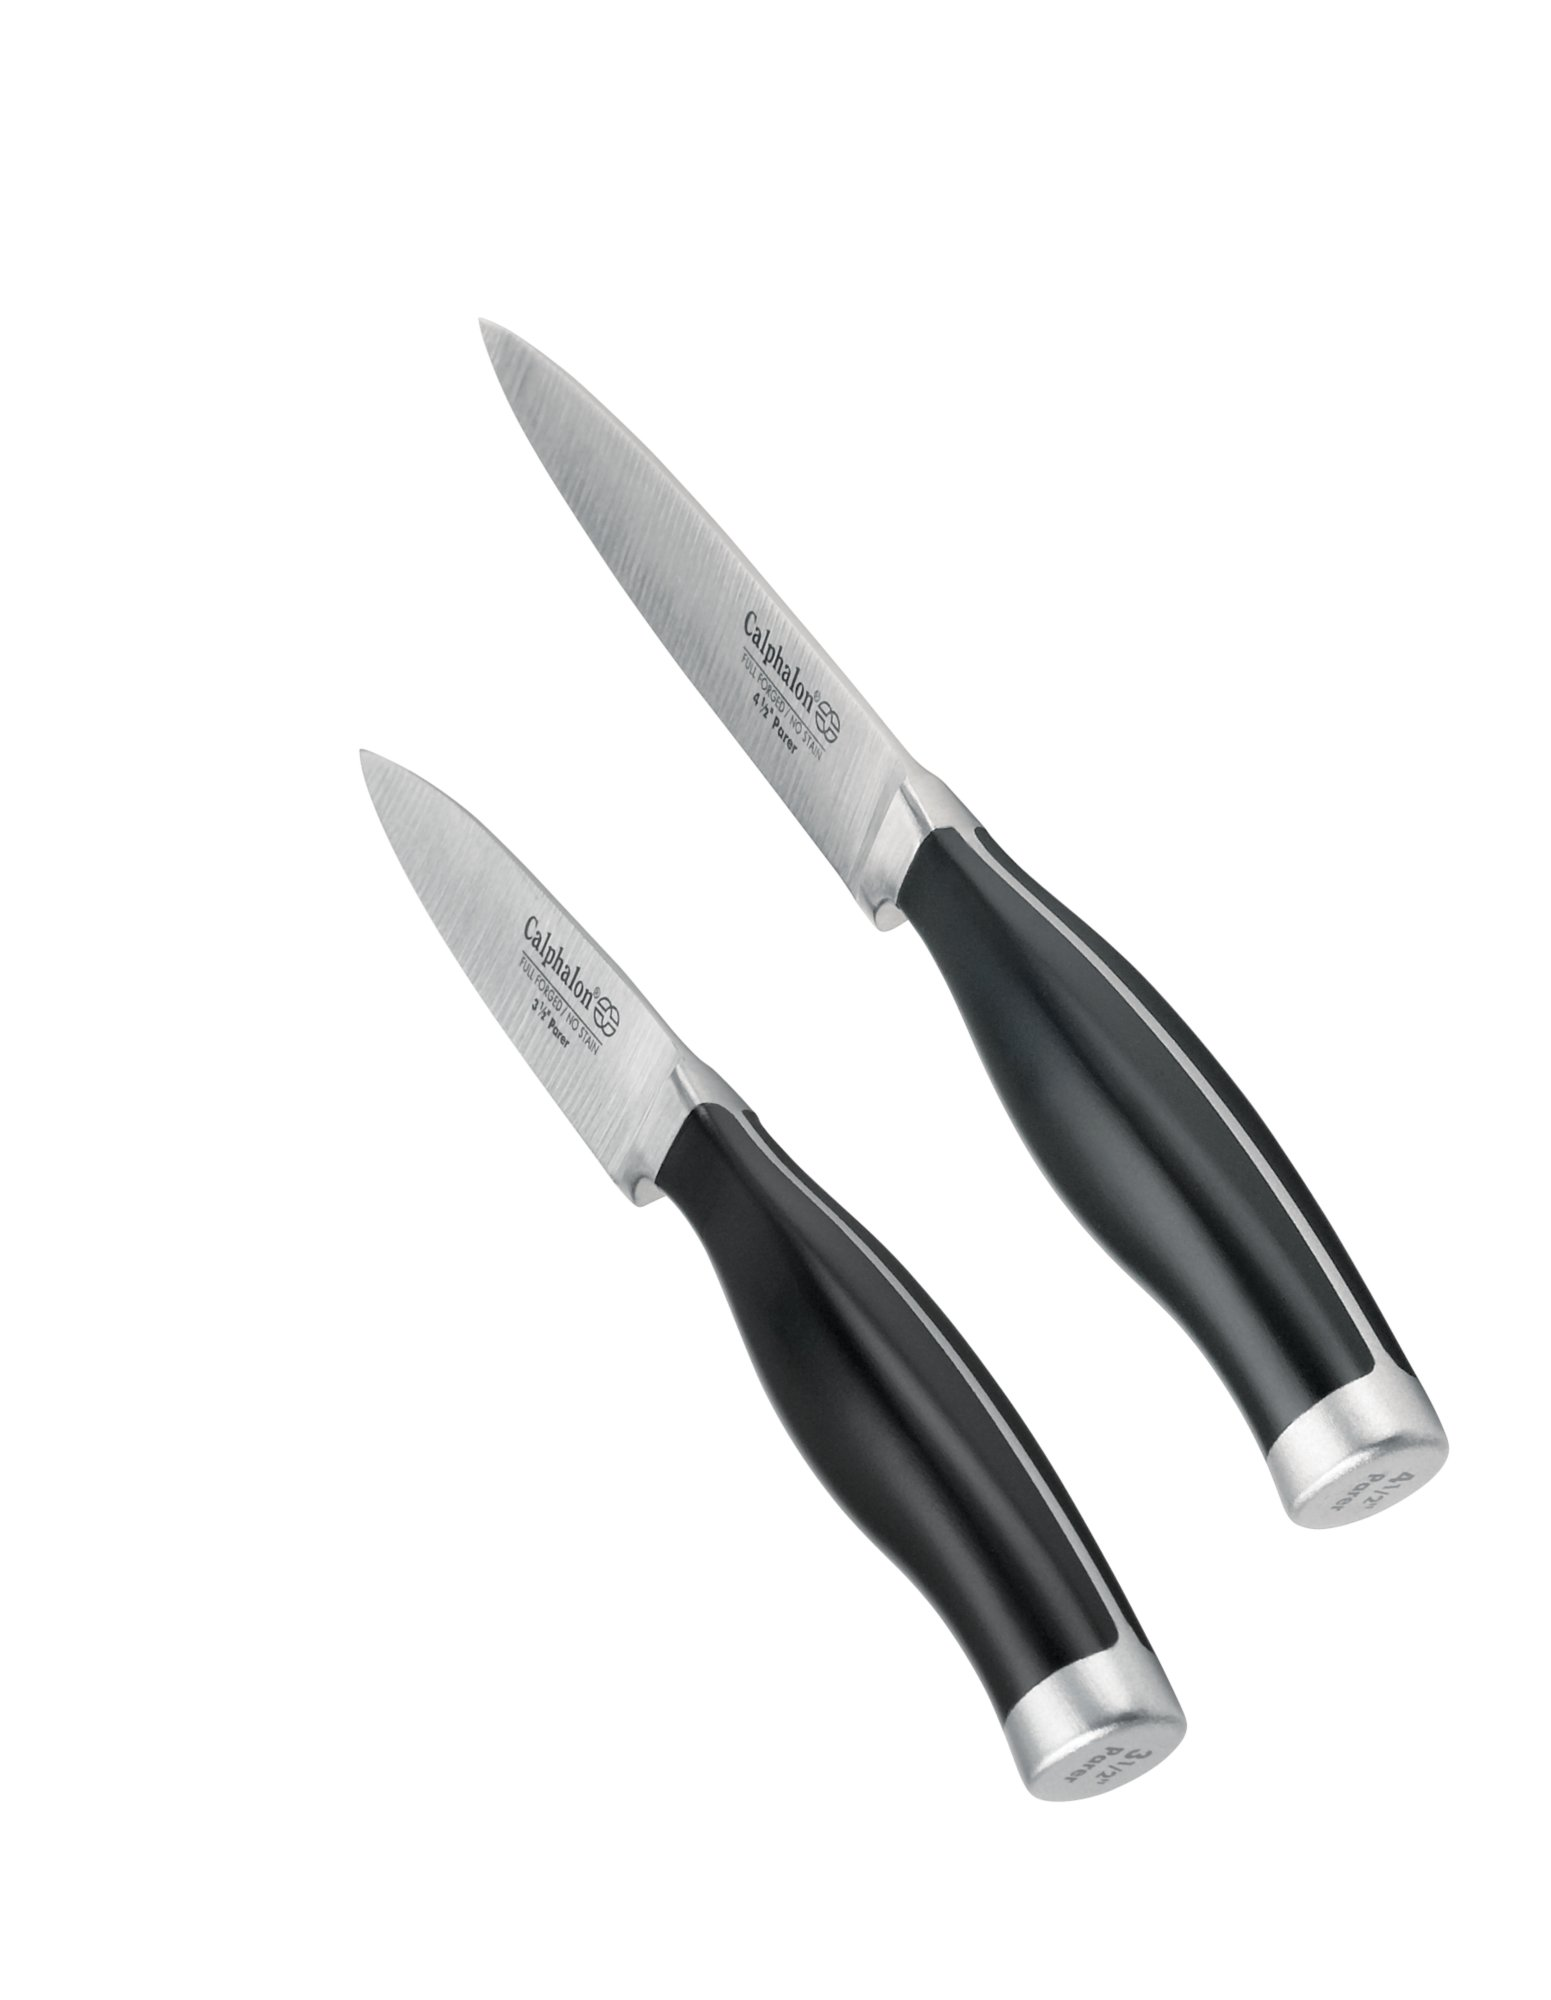 Calphalon Contemporary 2-pc. Paring Knife Set